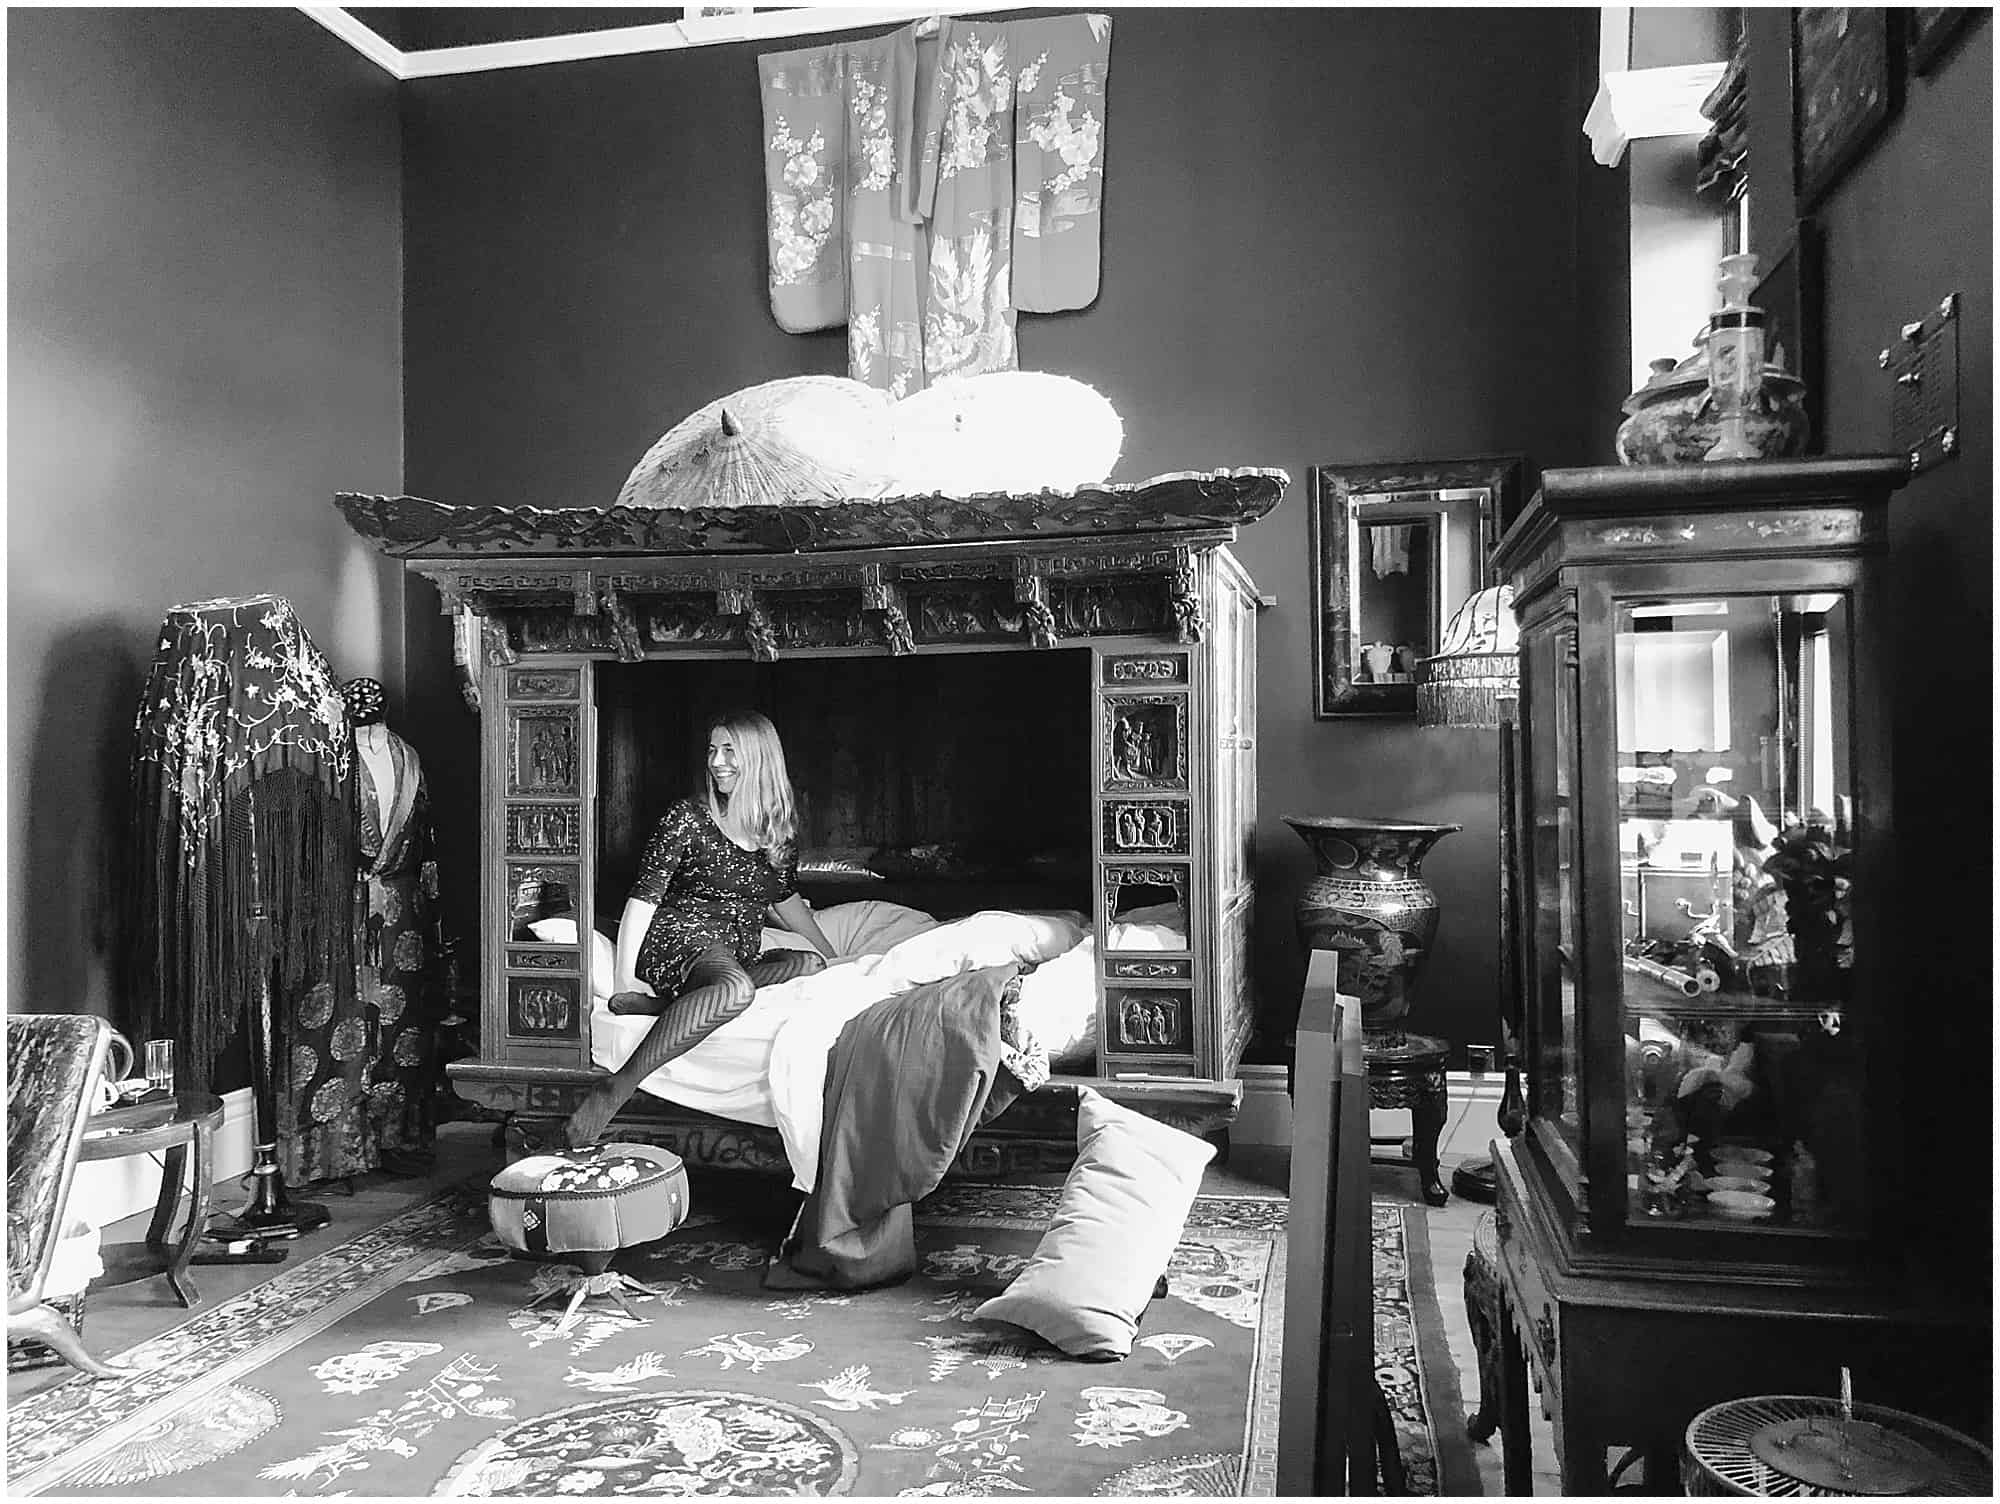 Abigail King on Opium Den Bed